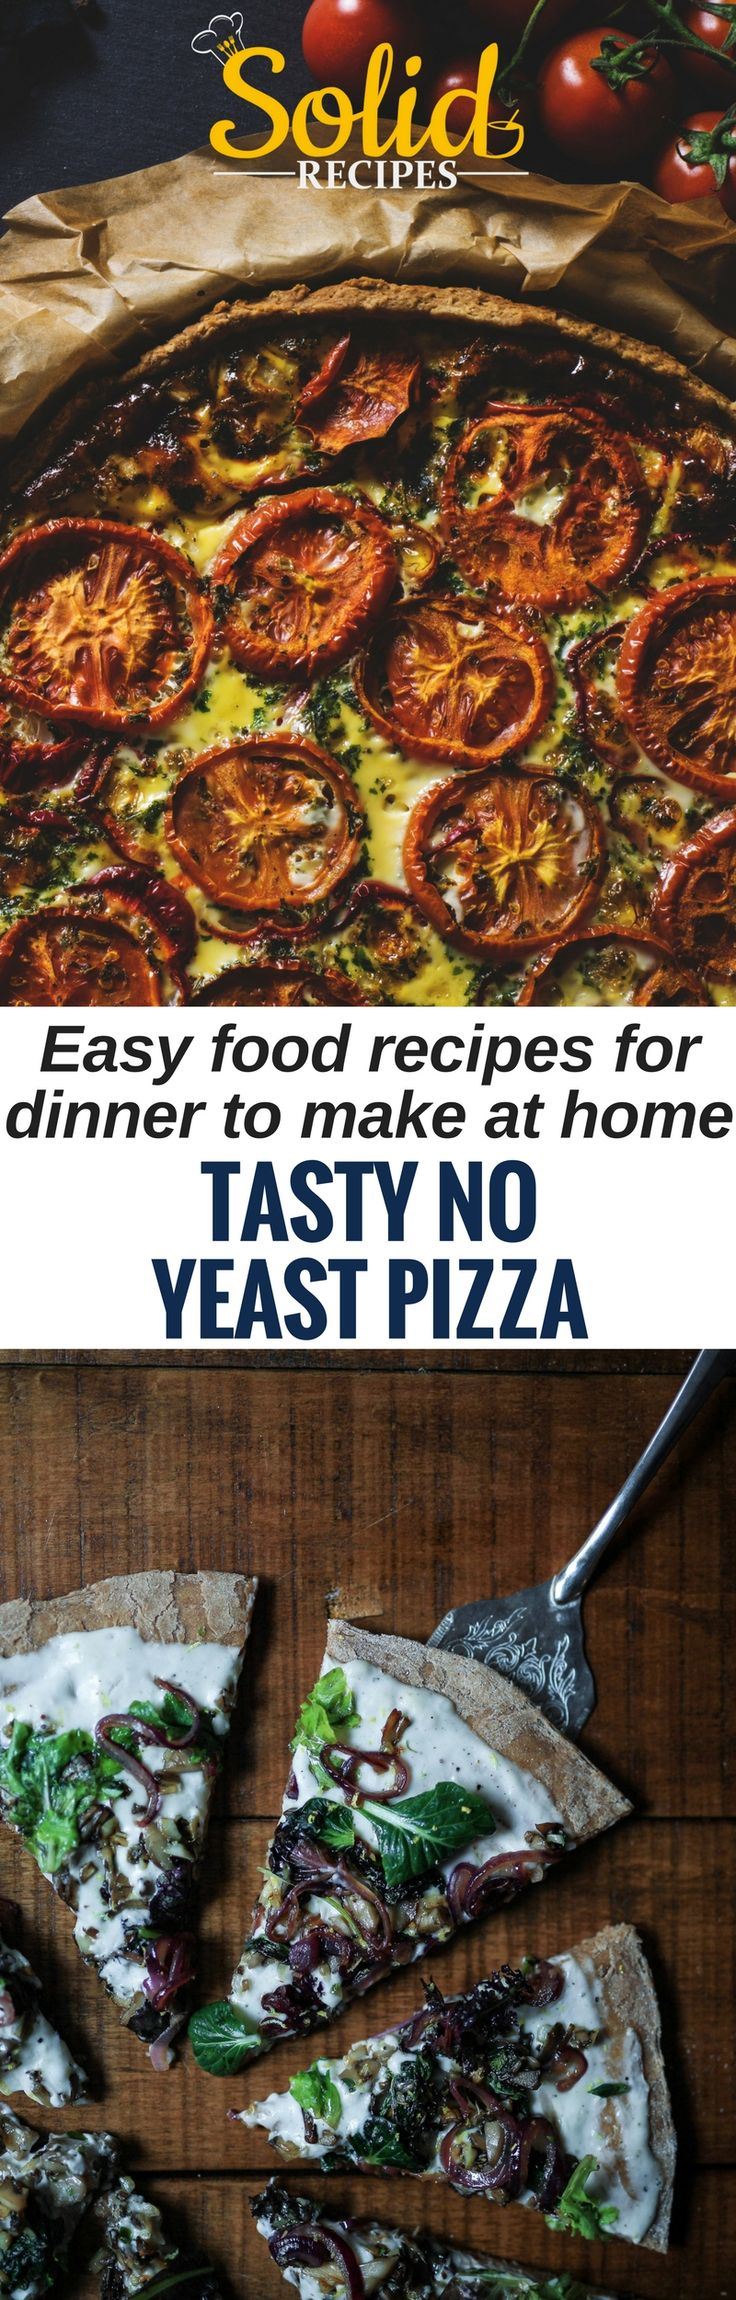 TASTY NO YEAST PIZZA – Easy food recipes for dinner to make at home Not always the photos matched the recipe. pizza dough recipe | pizza recipes | pizza dough | pizza dip | pizza sauce | Pizza Hut | California Pizza Kitchen | Pizza McPizza | Pizza, Sandwiches, Pasta & Cheesy Stuff | pizza & meatza | Pizza Recipes